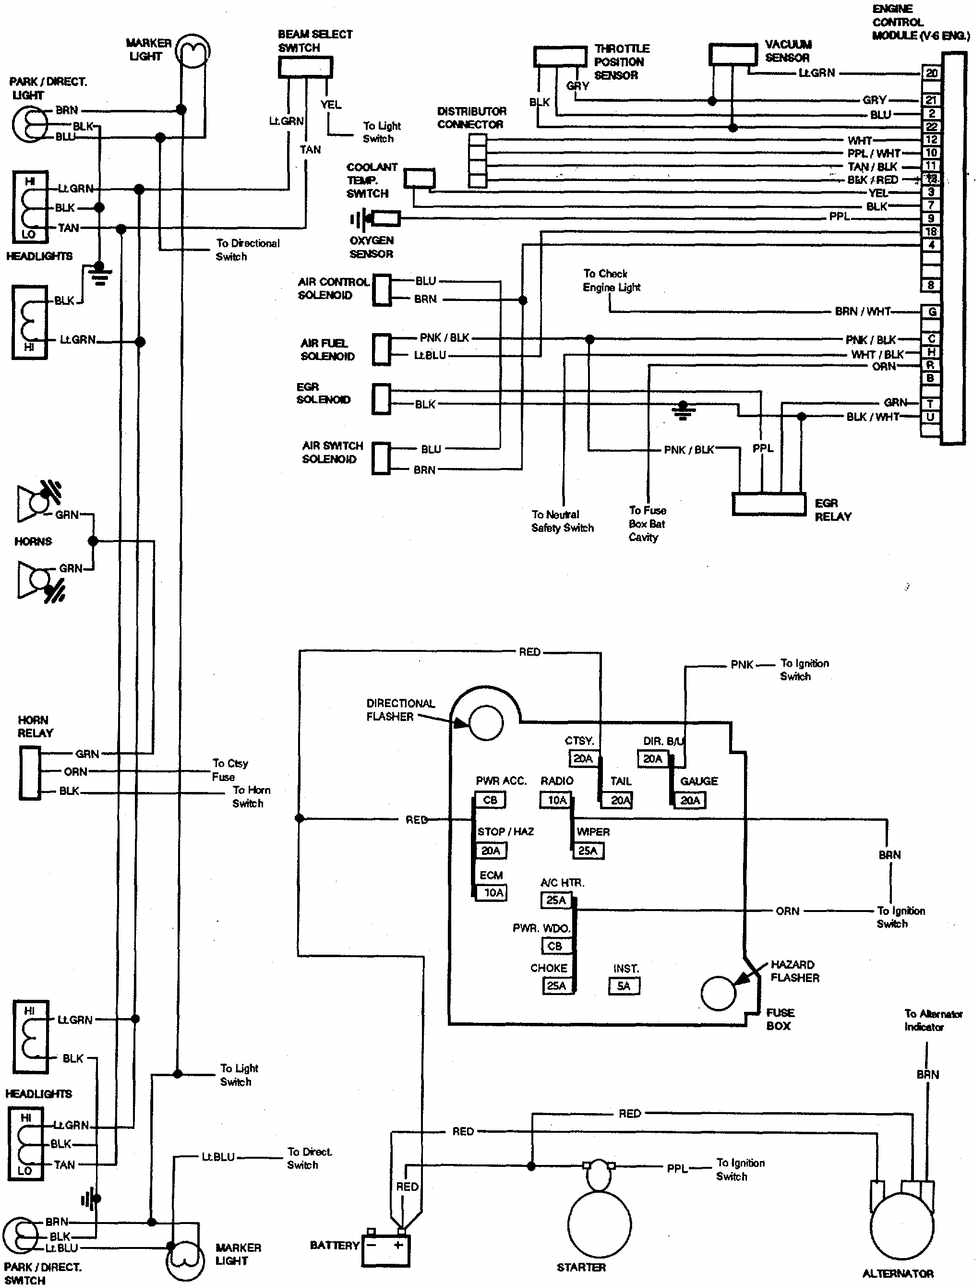 chevrolet v8 trucks 1981 1987 electrical wiring diagram 1971 Ford Bronco Wiring Diagram 1983 Ford Bronco Wiring Diagram